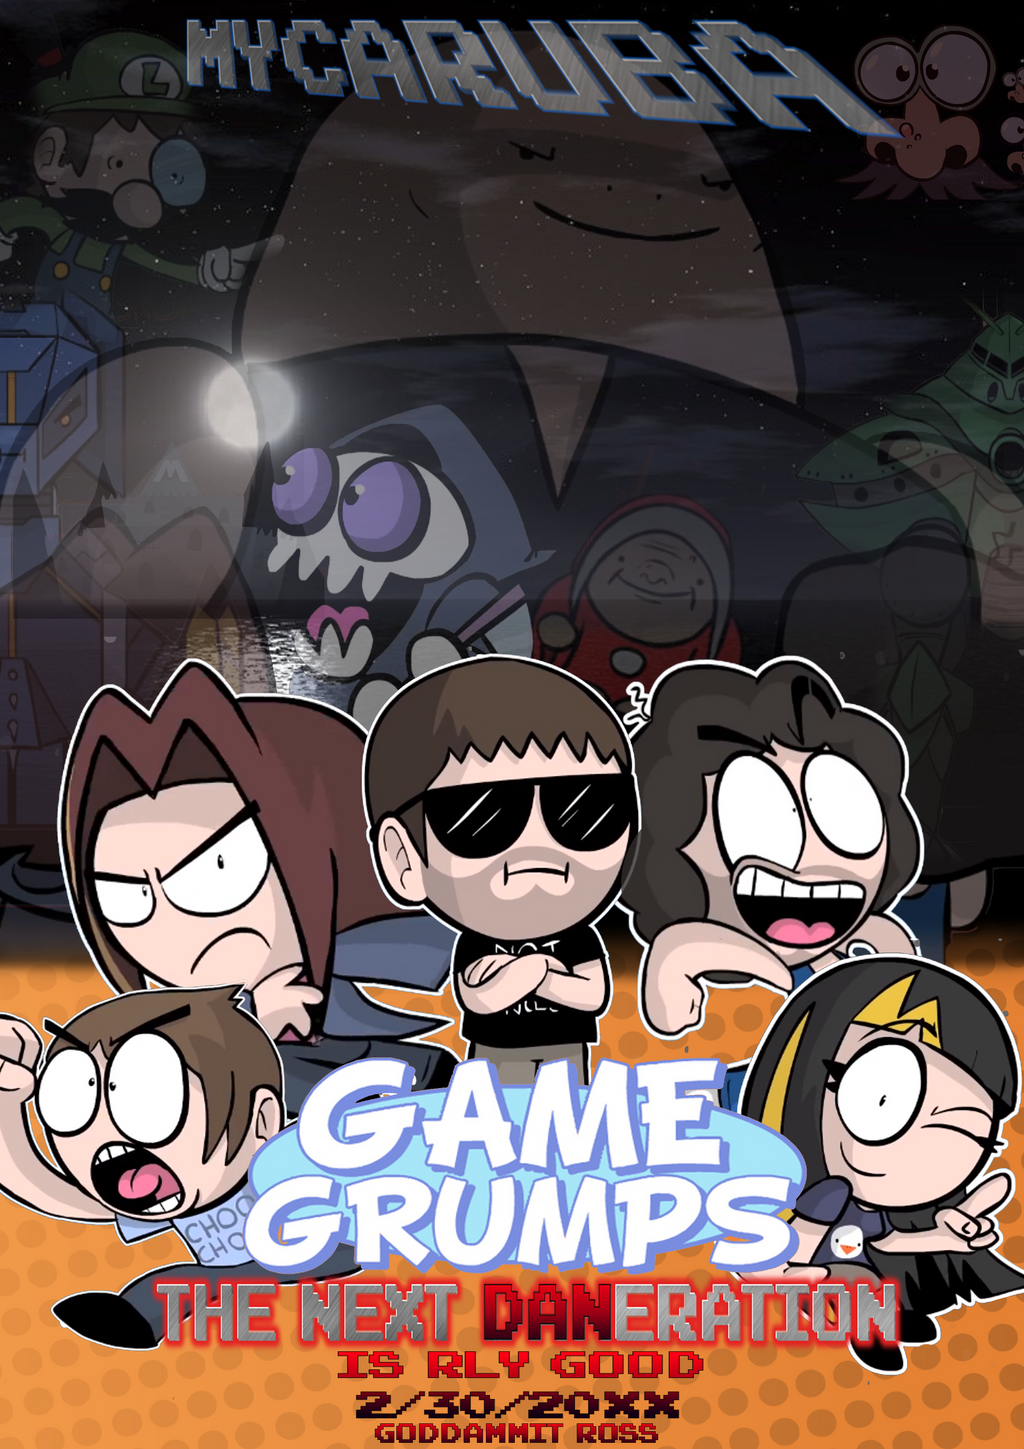 Game Grumps - The Next Daneration - Movie Poster by KristianTheTiragon